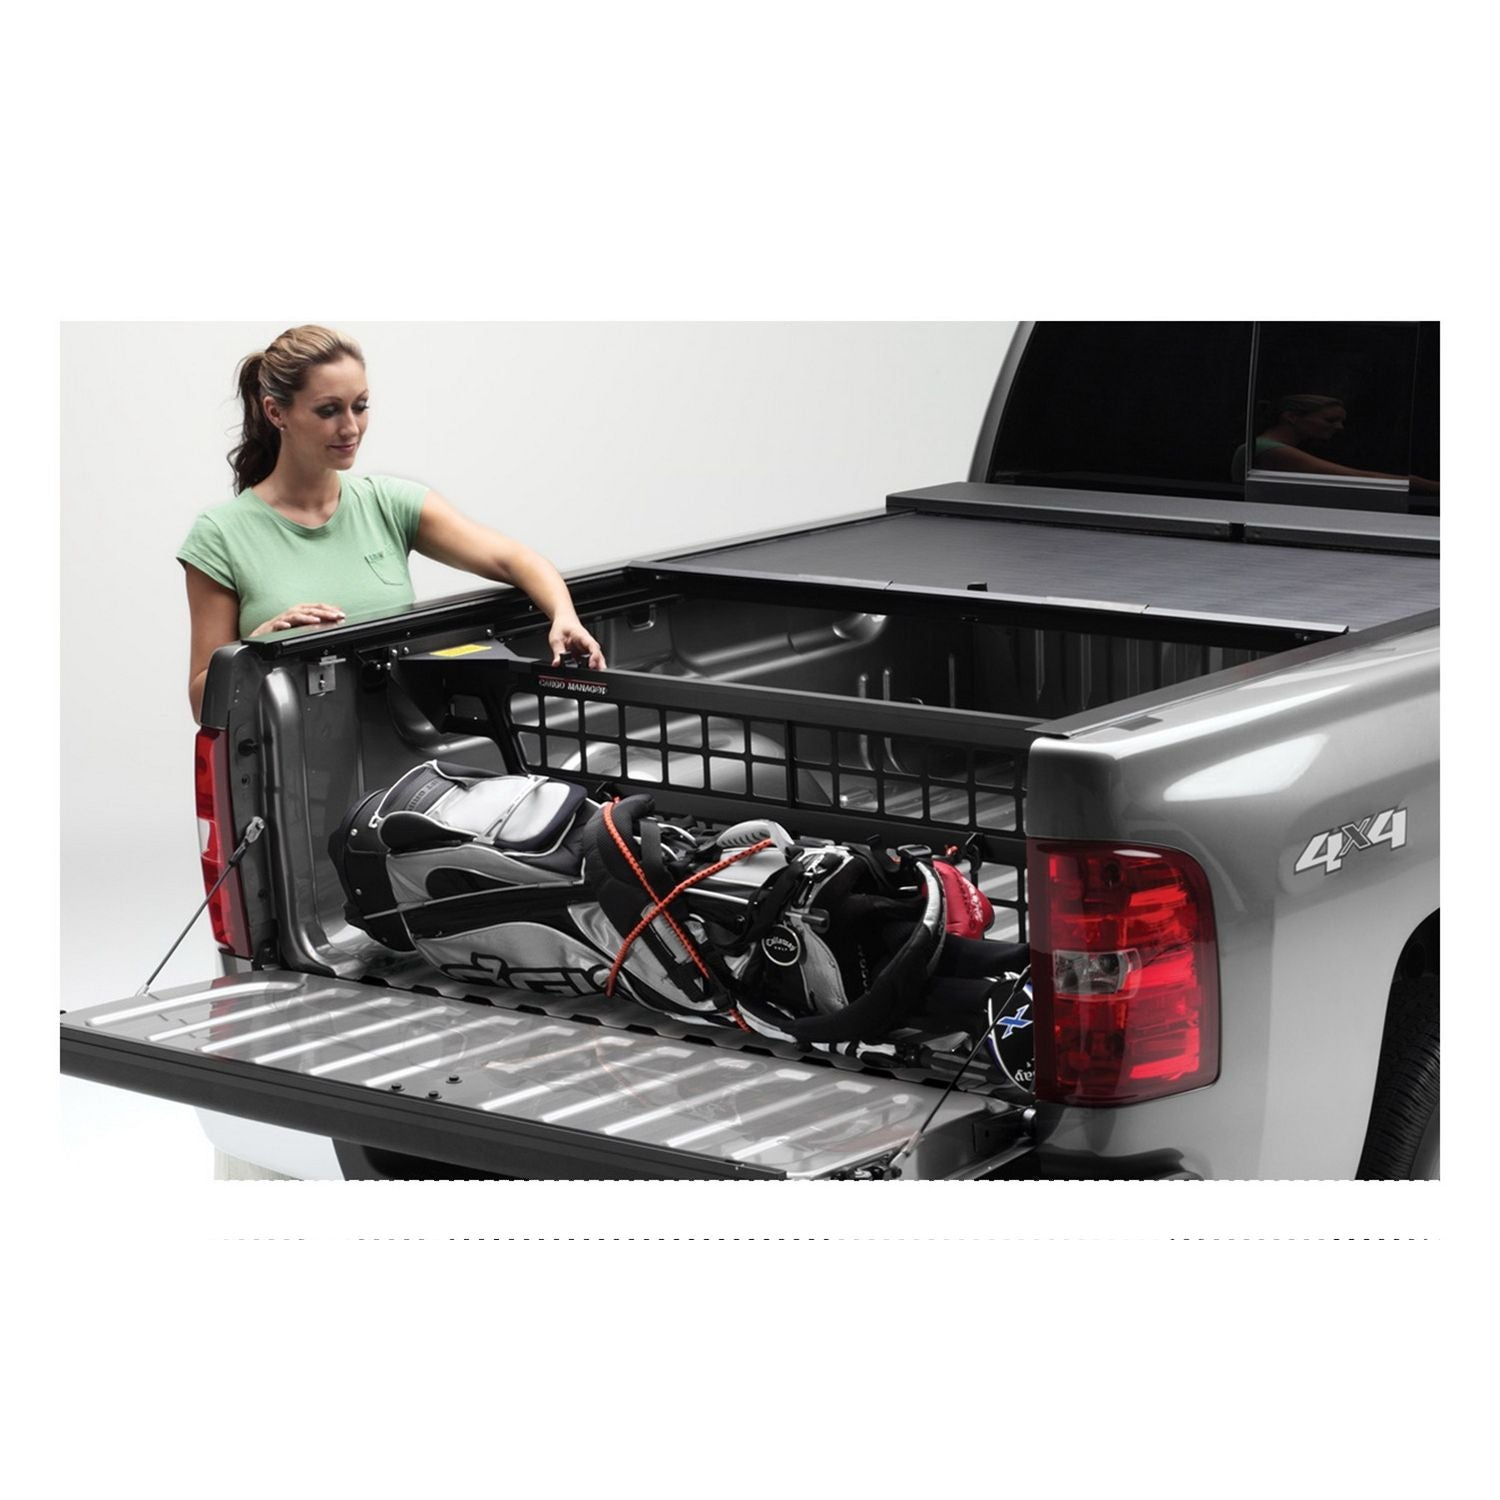 Roll-N-Lock CM530 Cargo Manager Rolling Truck Bed Divider Works Only with Roll-N-Lock Covers for 2016-2020 Toyota Tacoma Crew Cab | Fits 5 Ft. Bed